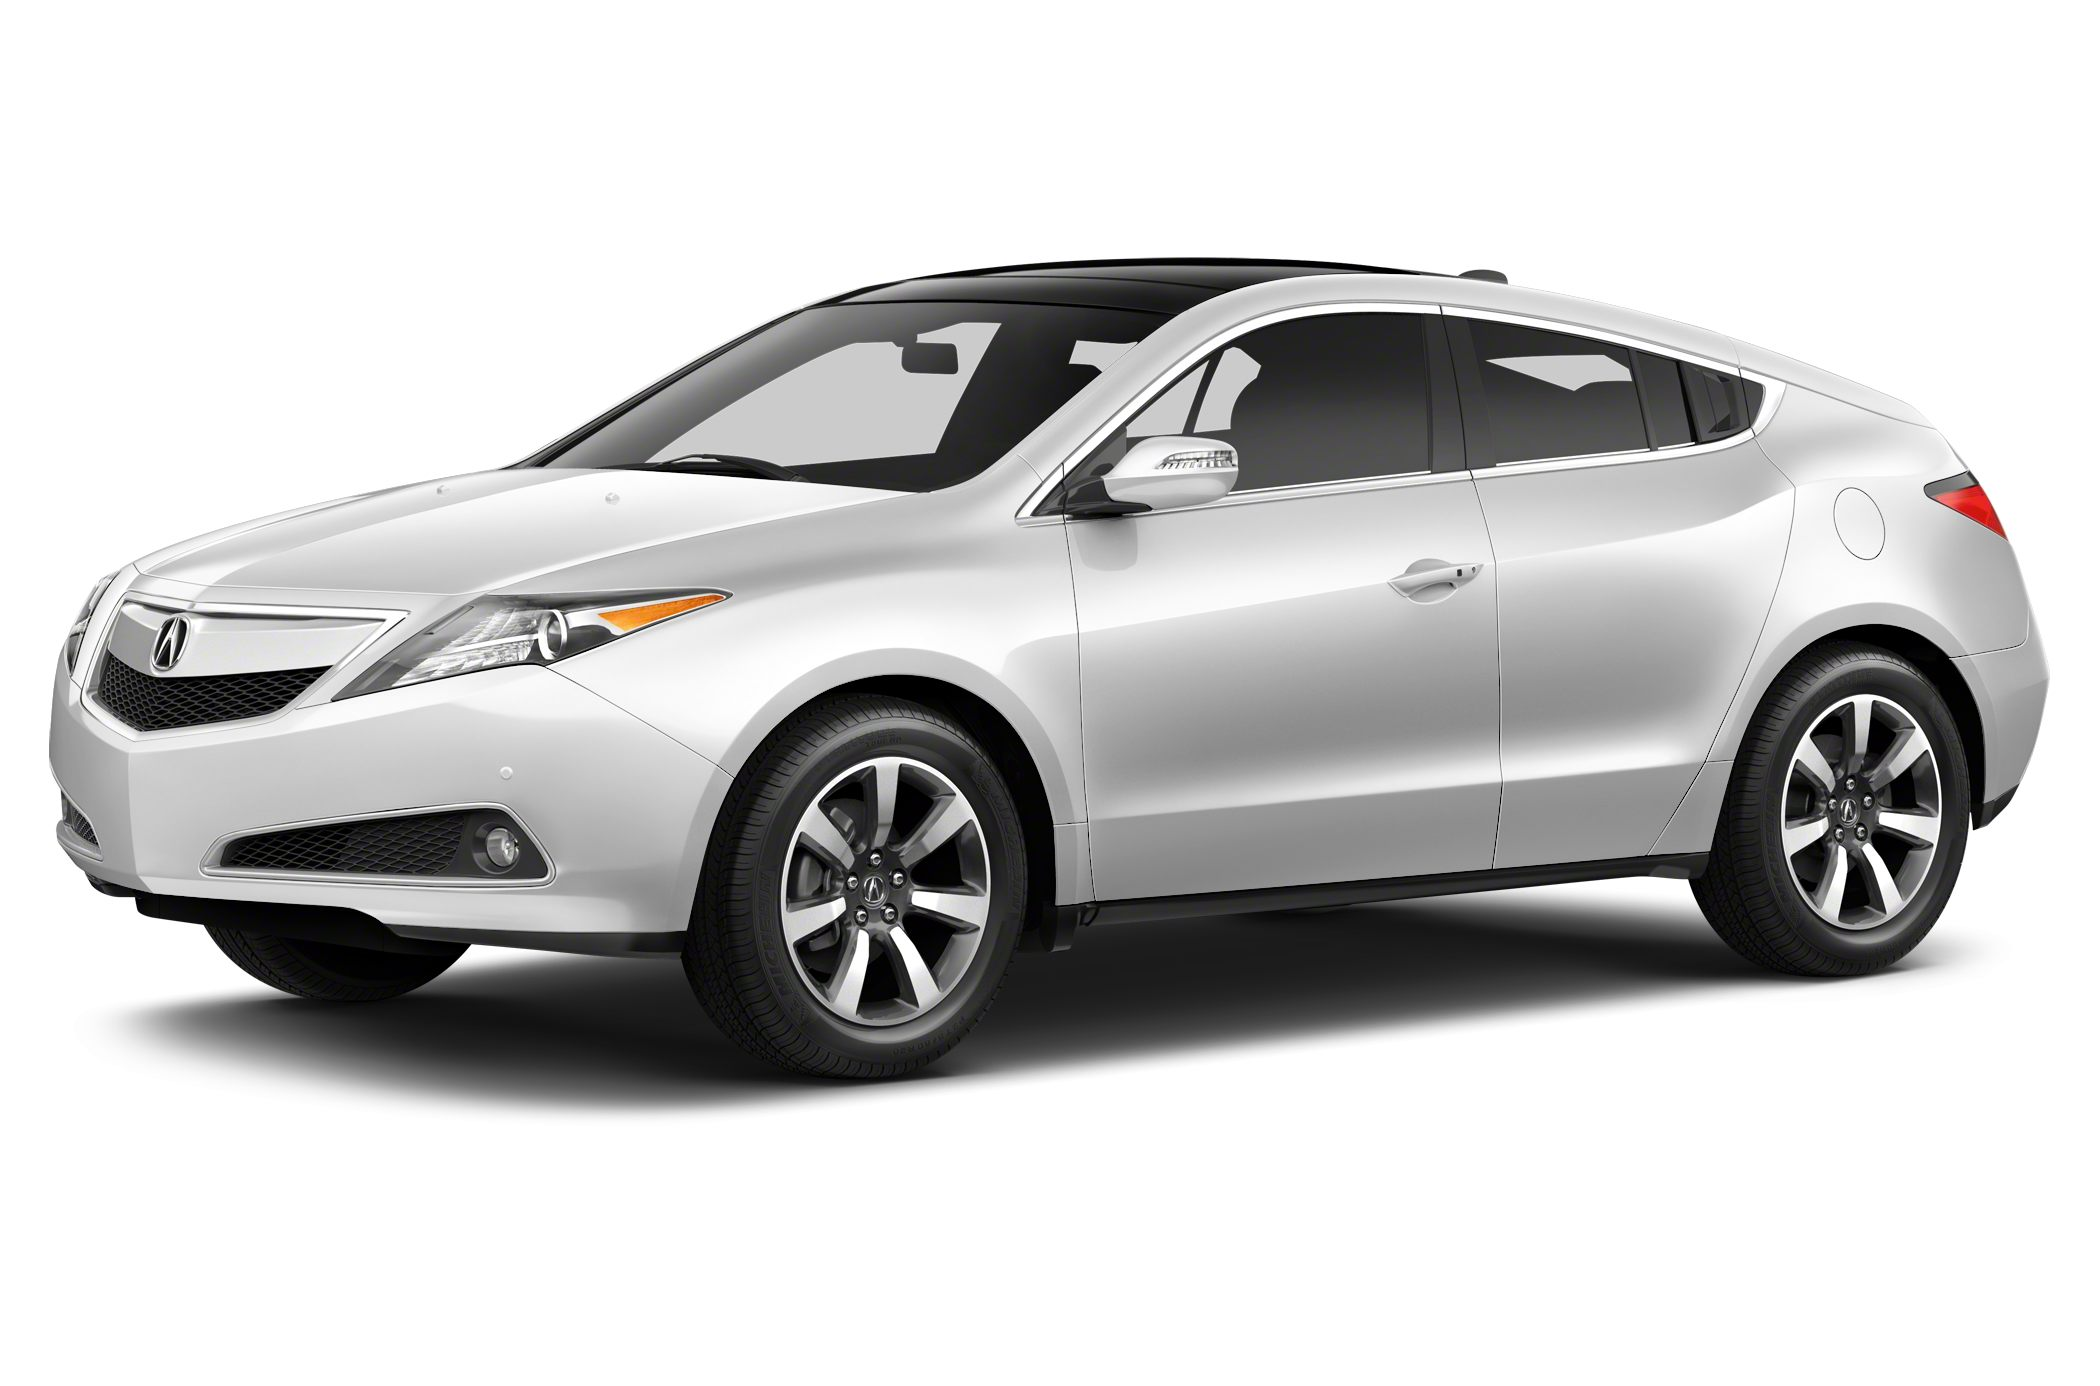 compact precision acura crossover on sites take prototype rdx premium a samabuelsamid